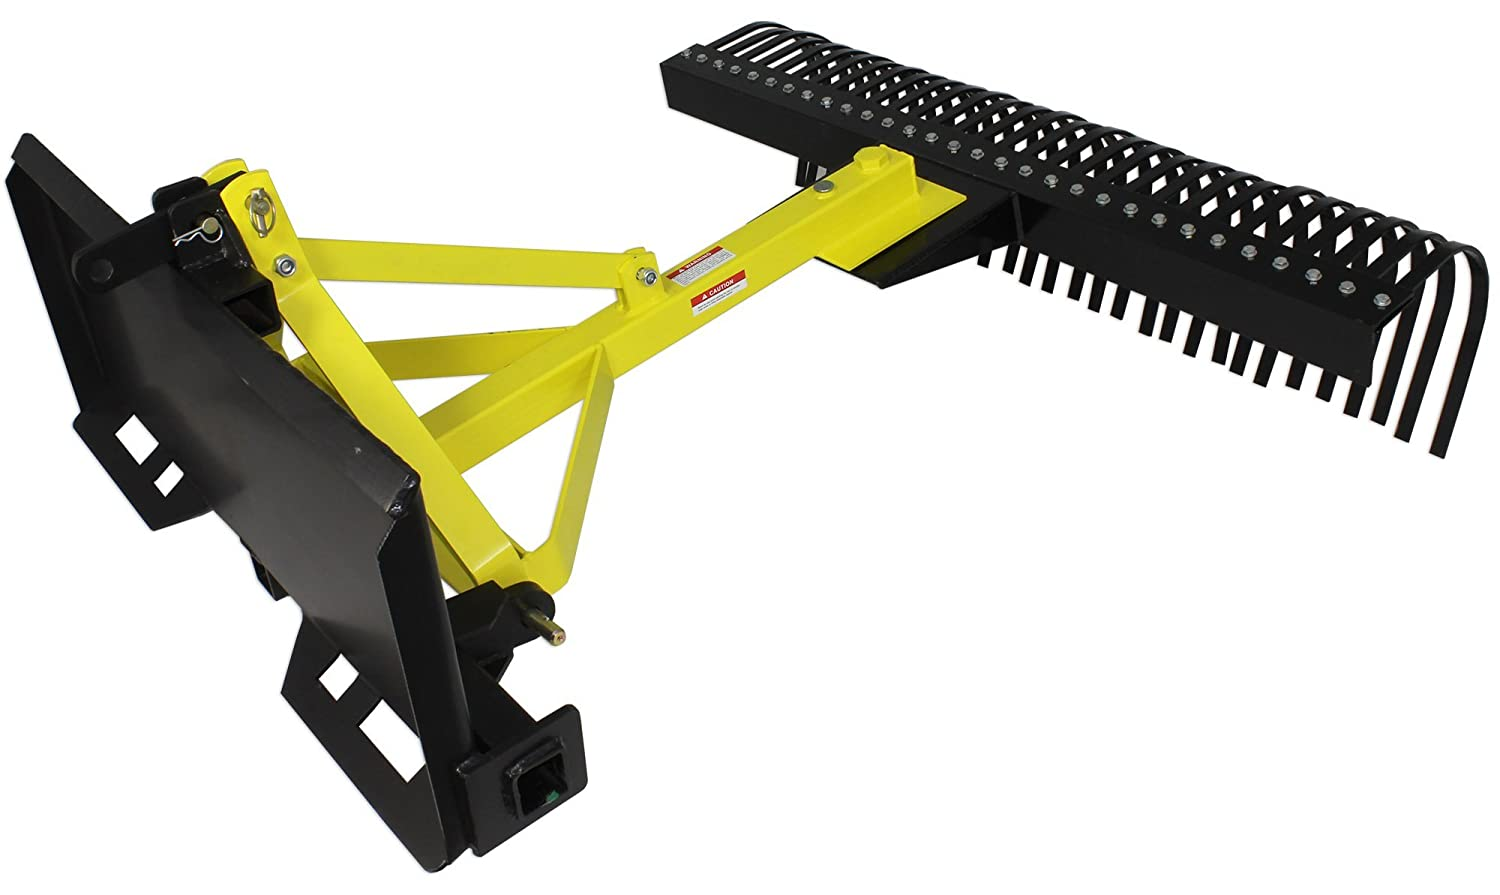 Amazon.com: Skid Steer Landscape Rake Soil Gravel Lawn Tow Push 3 point  Tractor 5 ft York: Home & Kitchen - Amazon.com: Skid Steer Landscape Rake Soil Gravel Lawn Tow Push 3